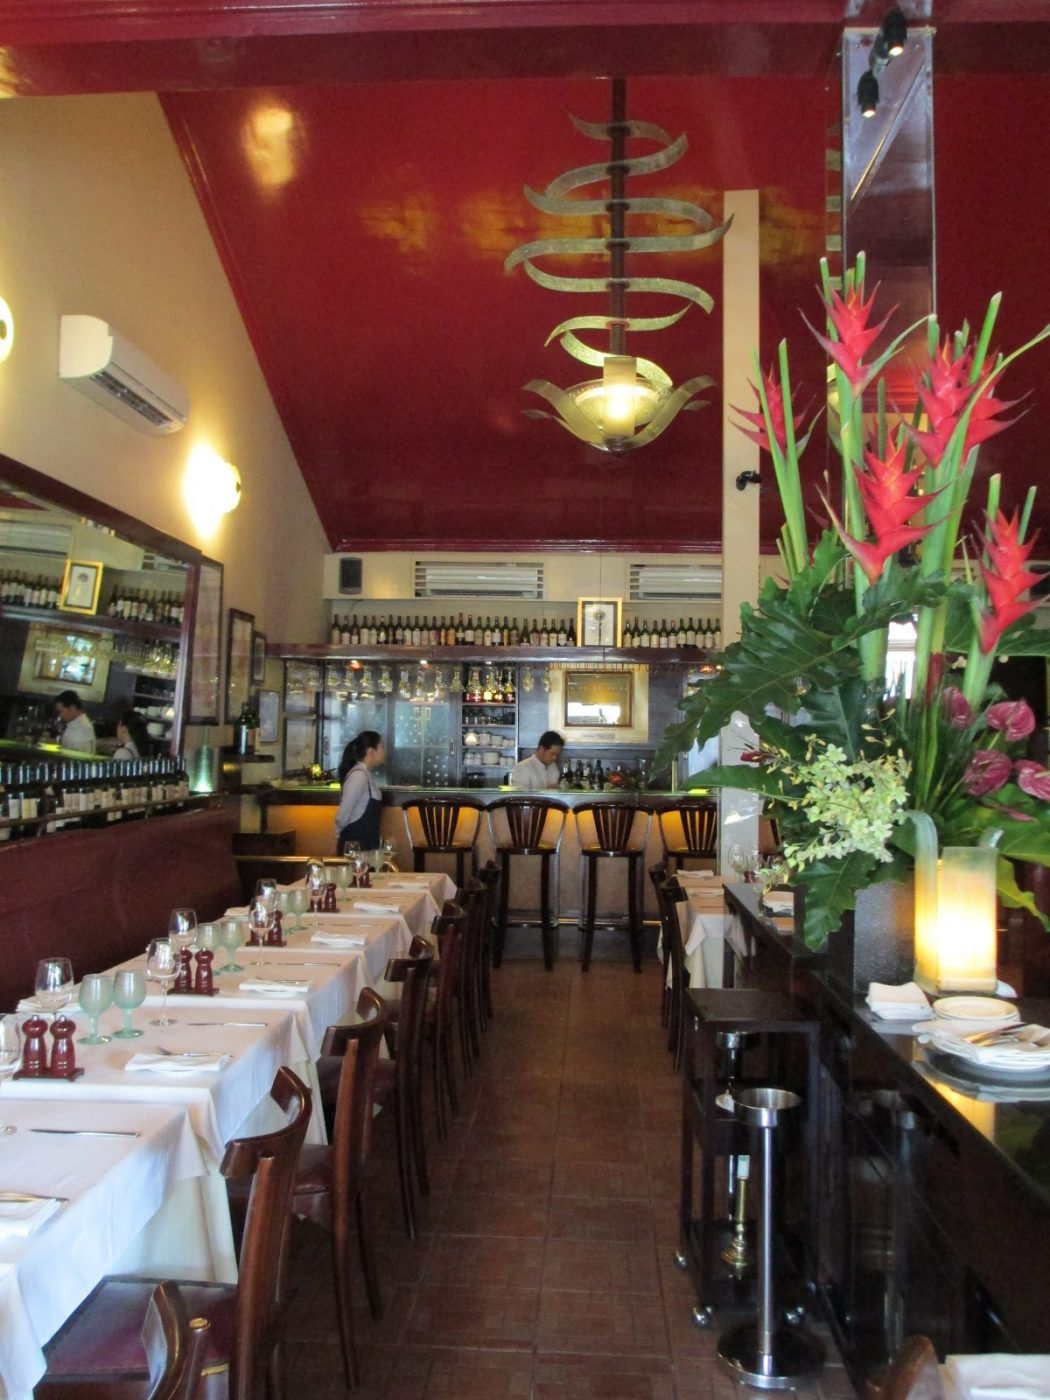 The Ugly Restaurant Interior Design Makes You Lose Clients